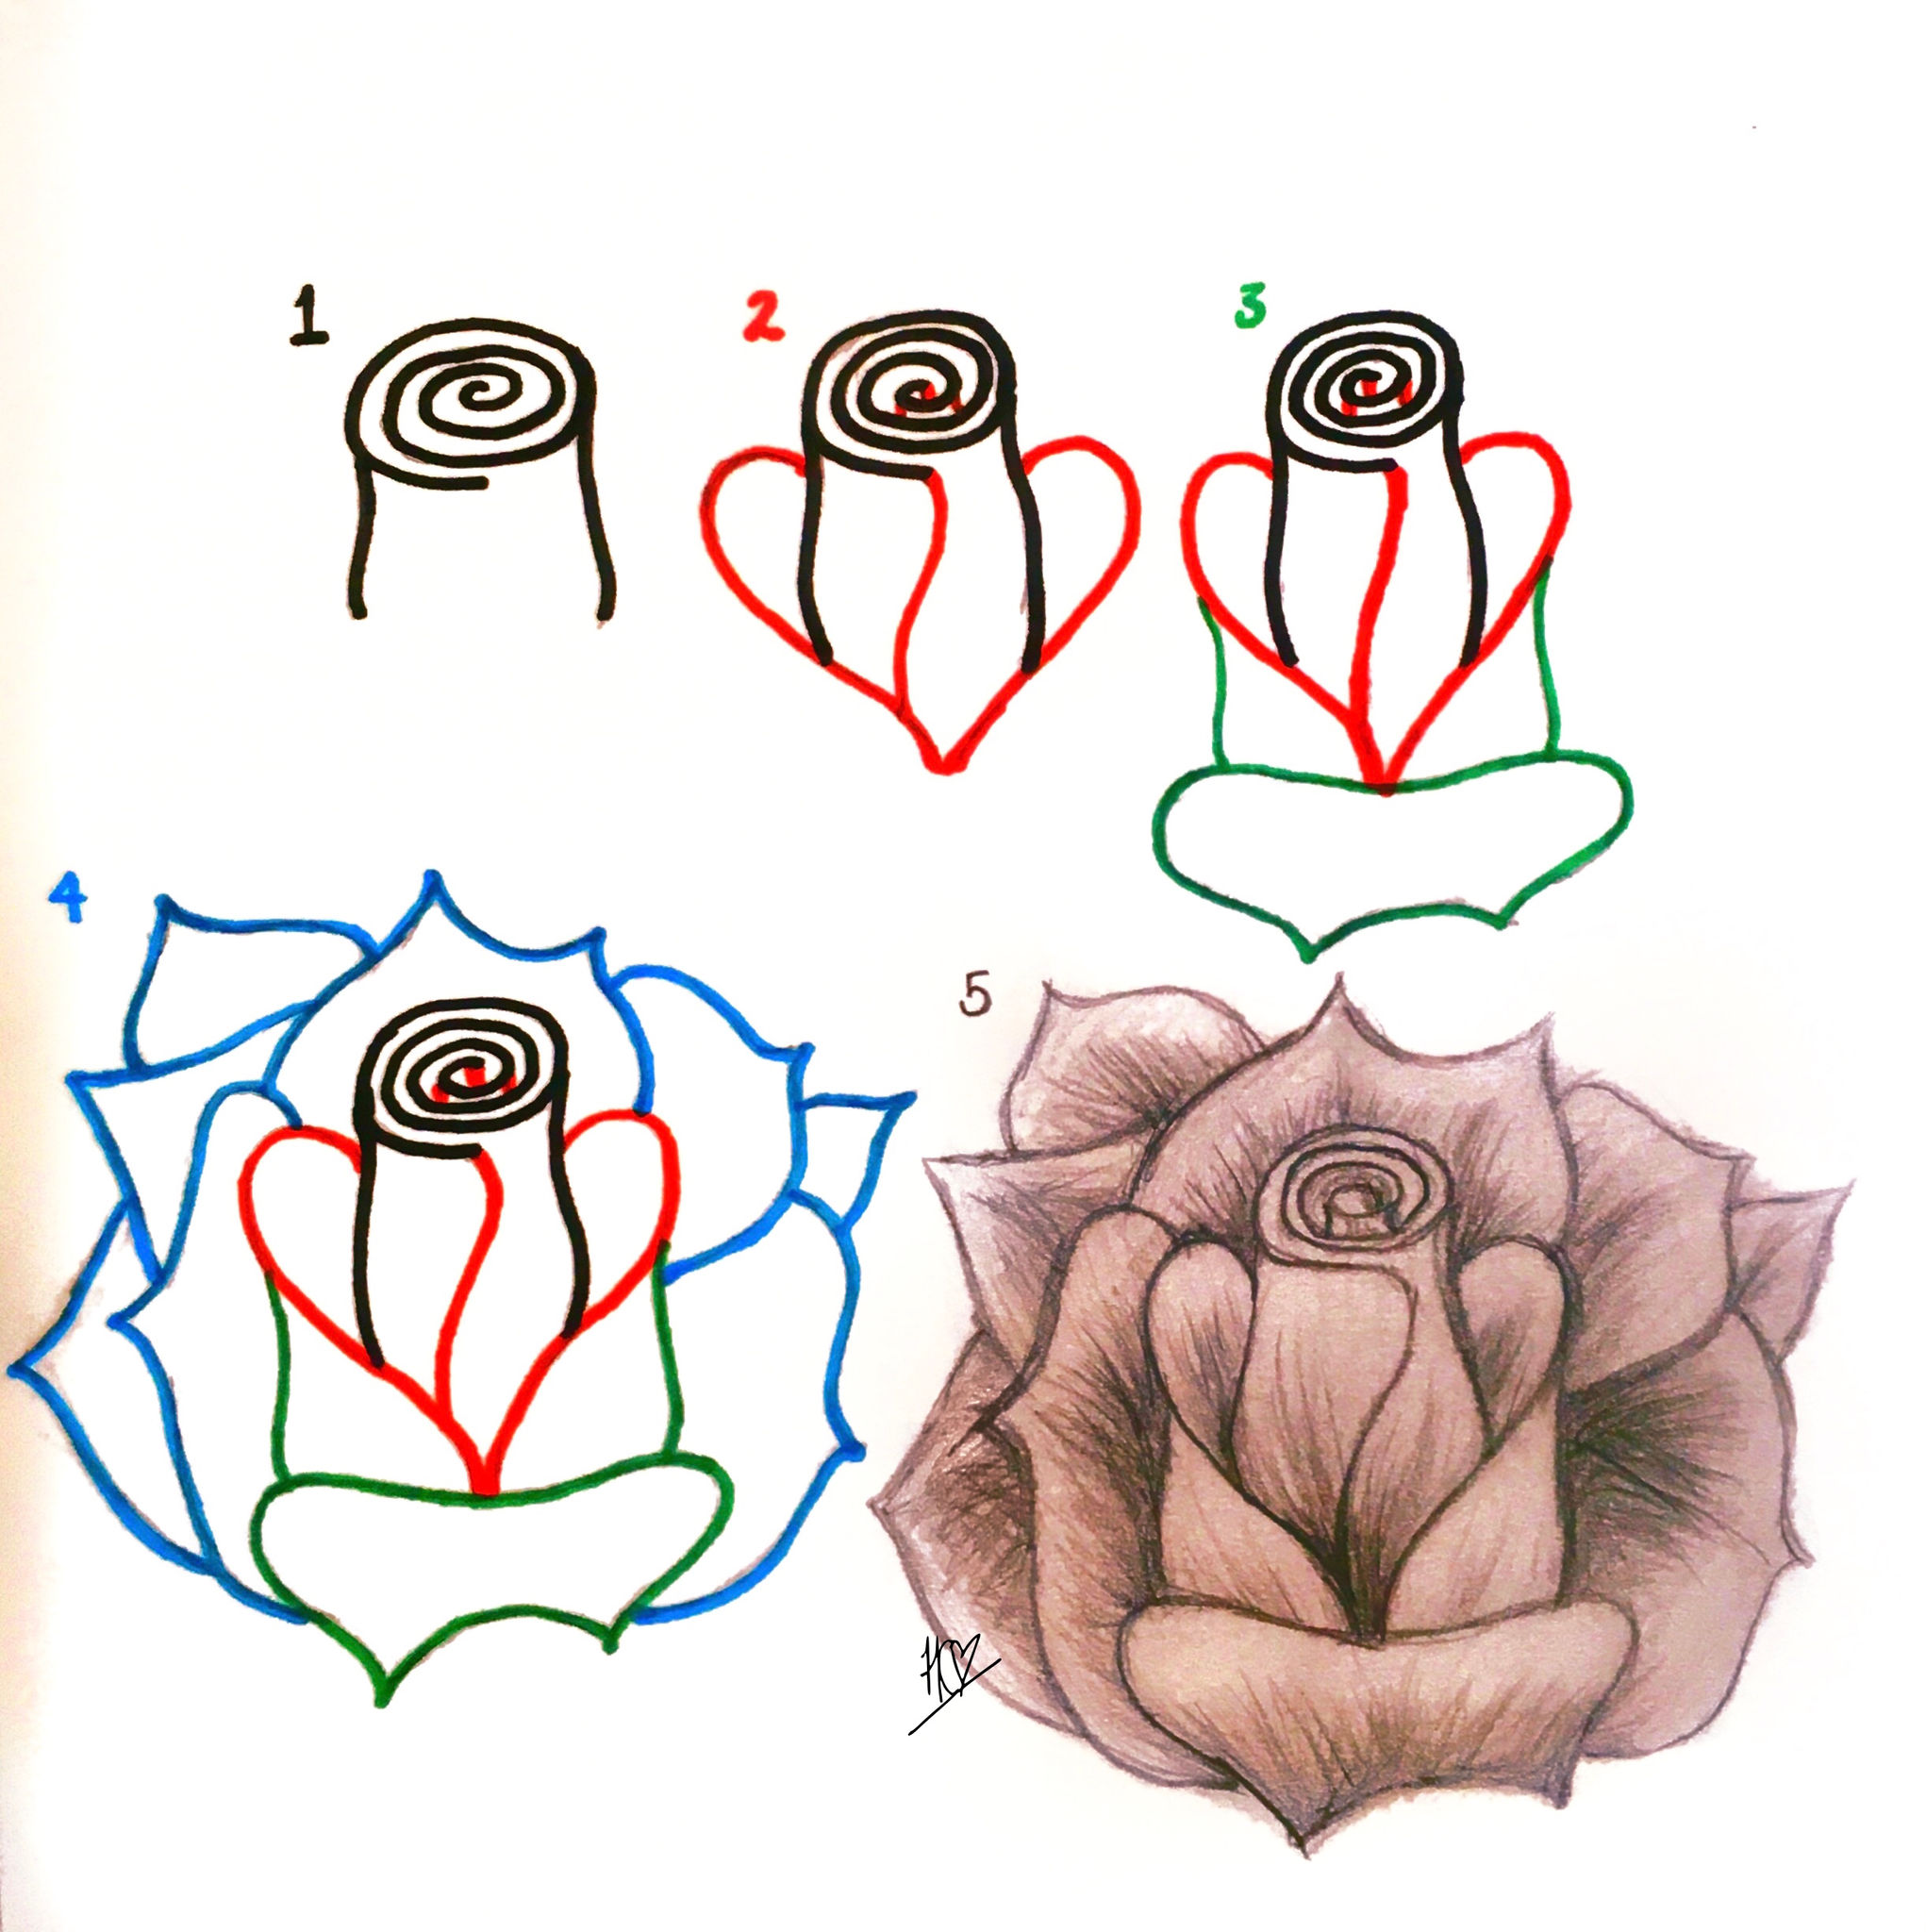 How To Draw A Realistic Rose Step By Step Picture Guide For Beginners